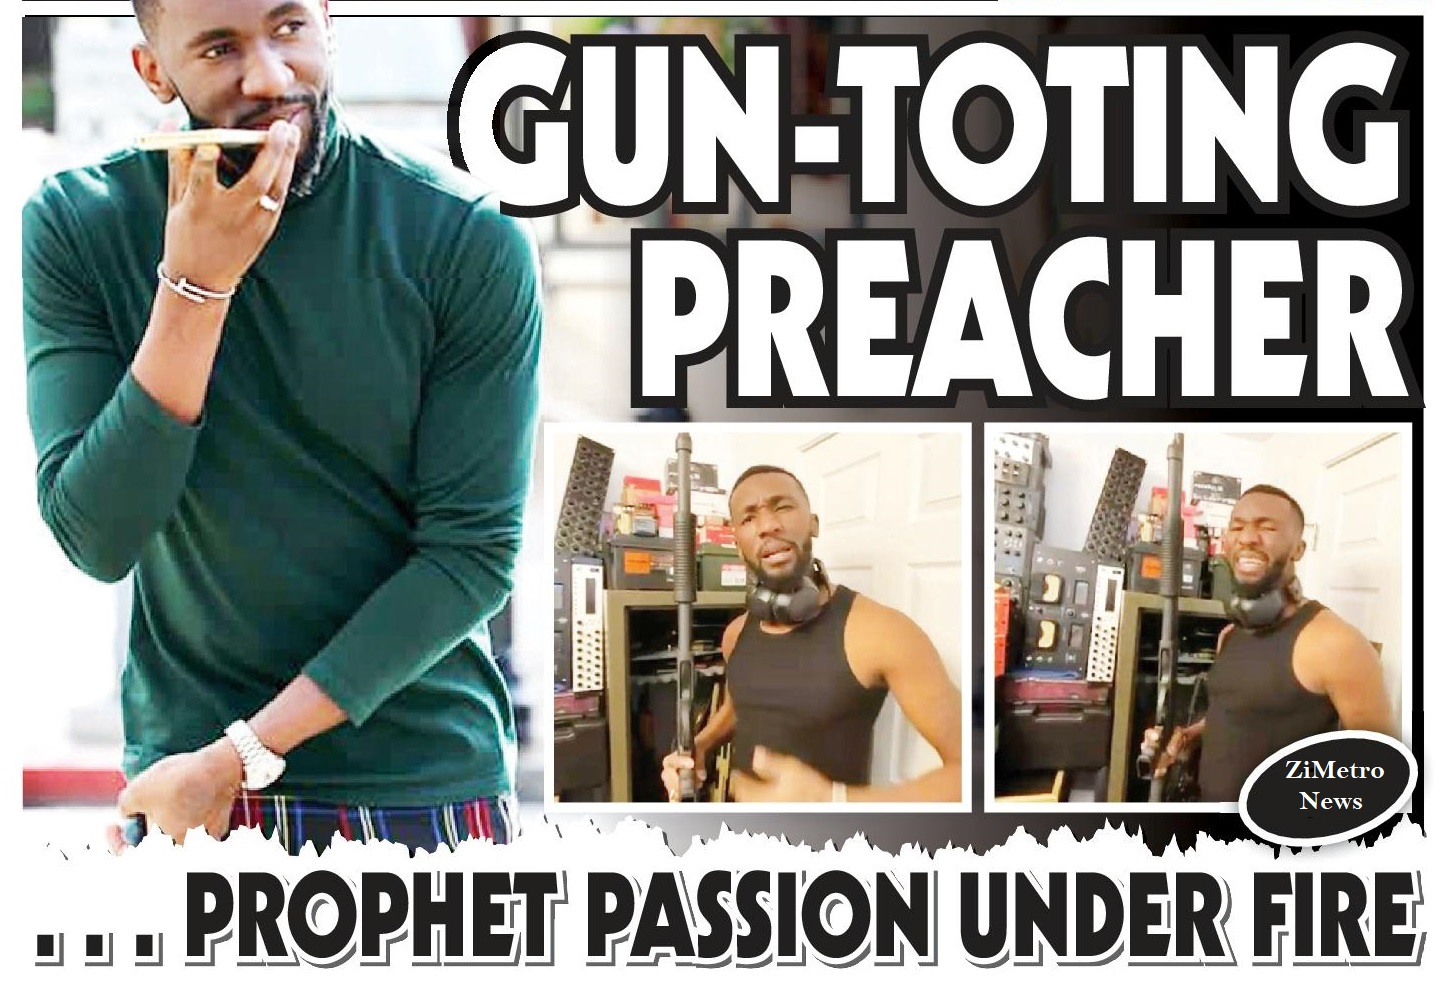 Gun totting Gaffa Prophet comes under fire!